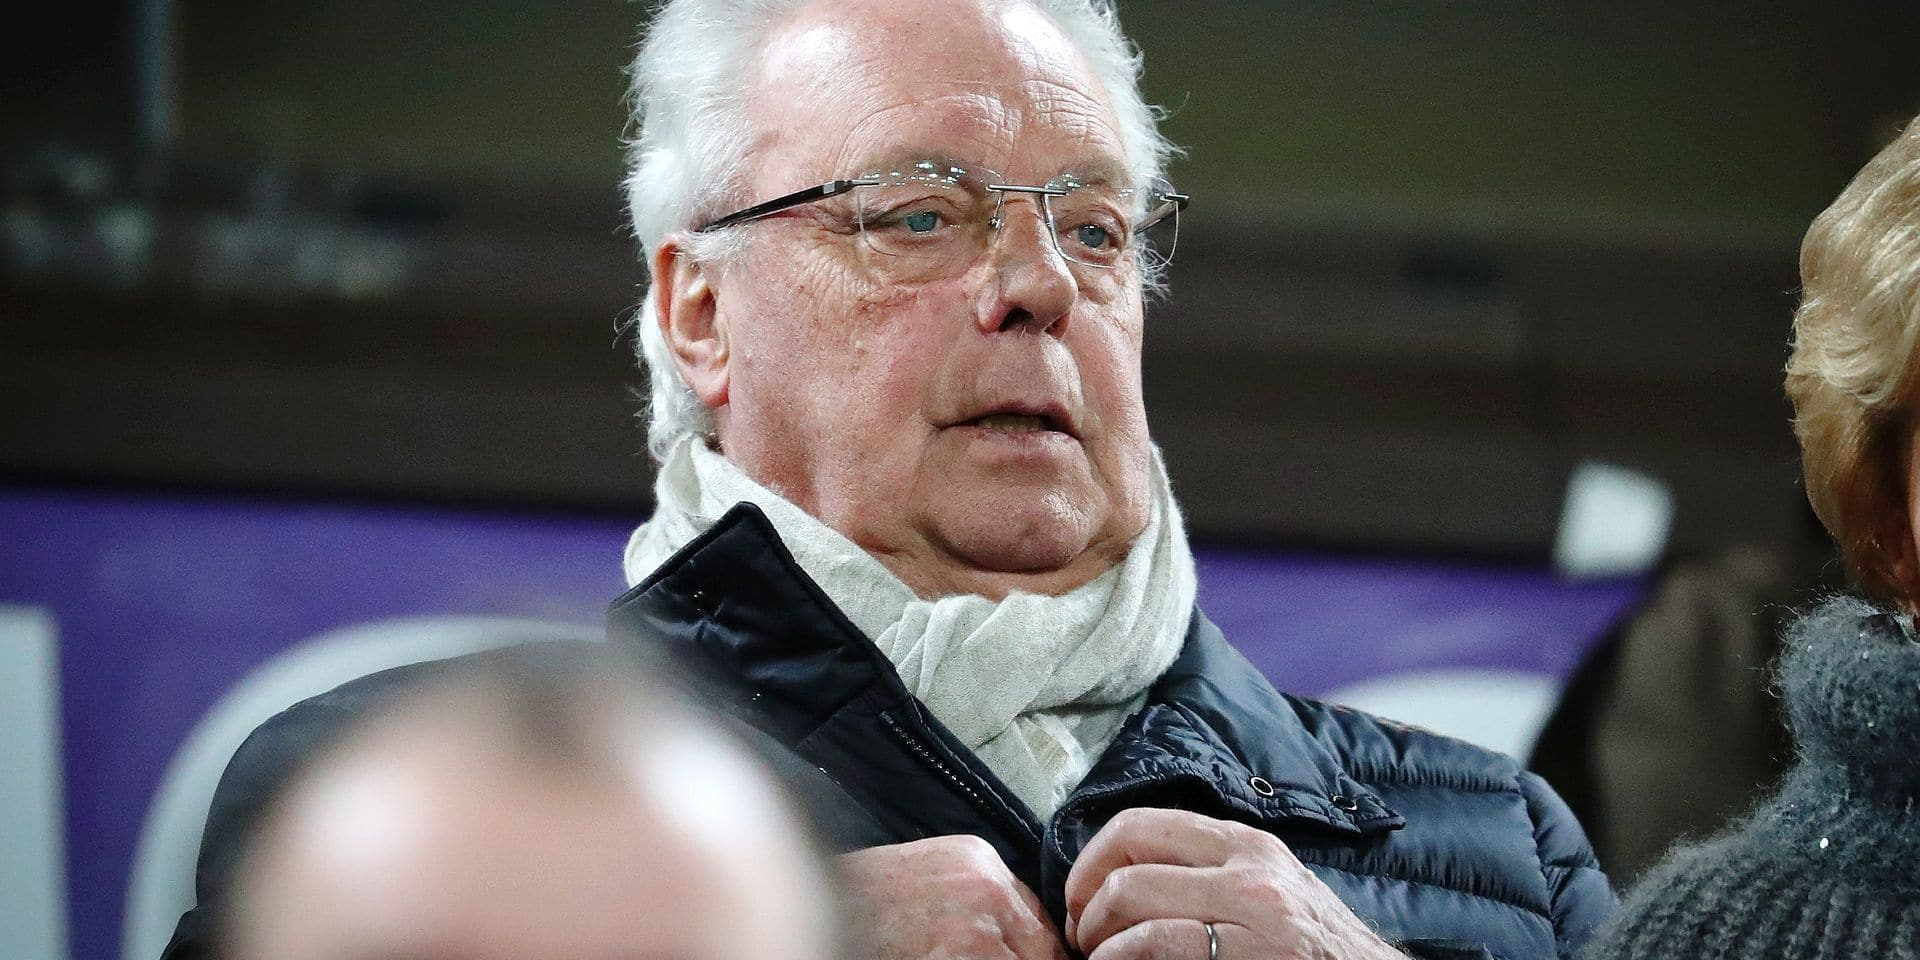 Anderlecht chairman Roger Vanden Stock pictured during the Jupiler Pro League match between RSC Anderlecht and Waasland-Beveren, in Brussels, Wednesday 24 January 2018, on the day 23 of the Jupiler Pro League, the Belgian soccer championship season 2017-2018. BELGA PHOTO VIRGINIE LEFOUR